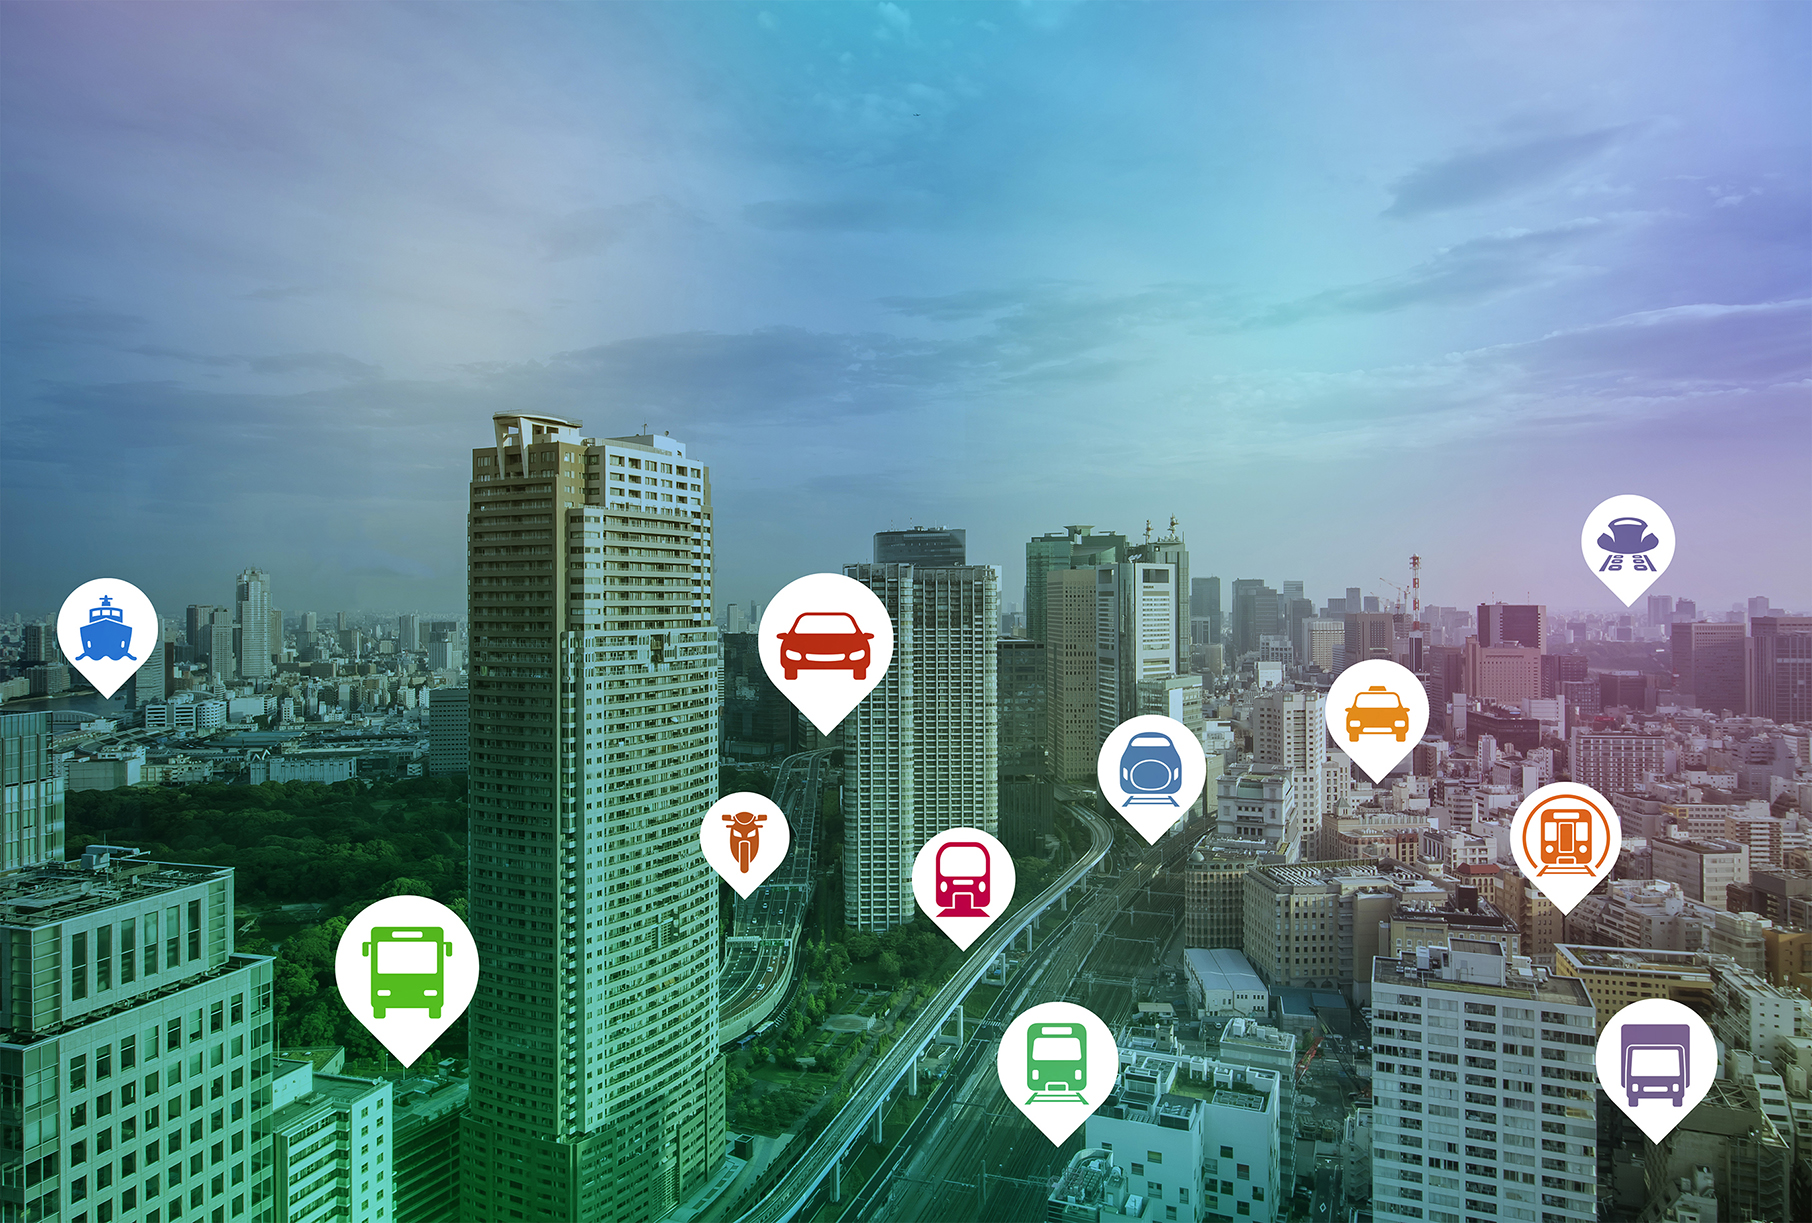 Smart city IoT transportation icons